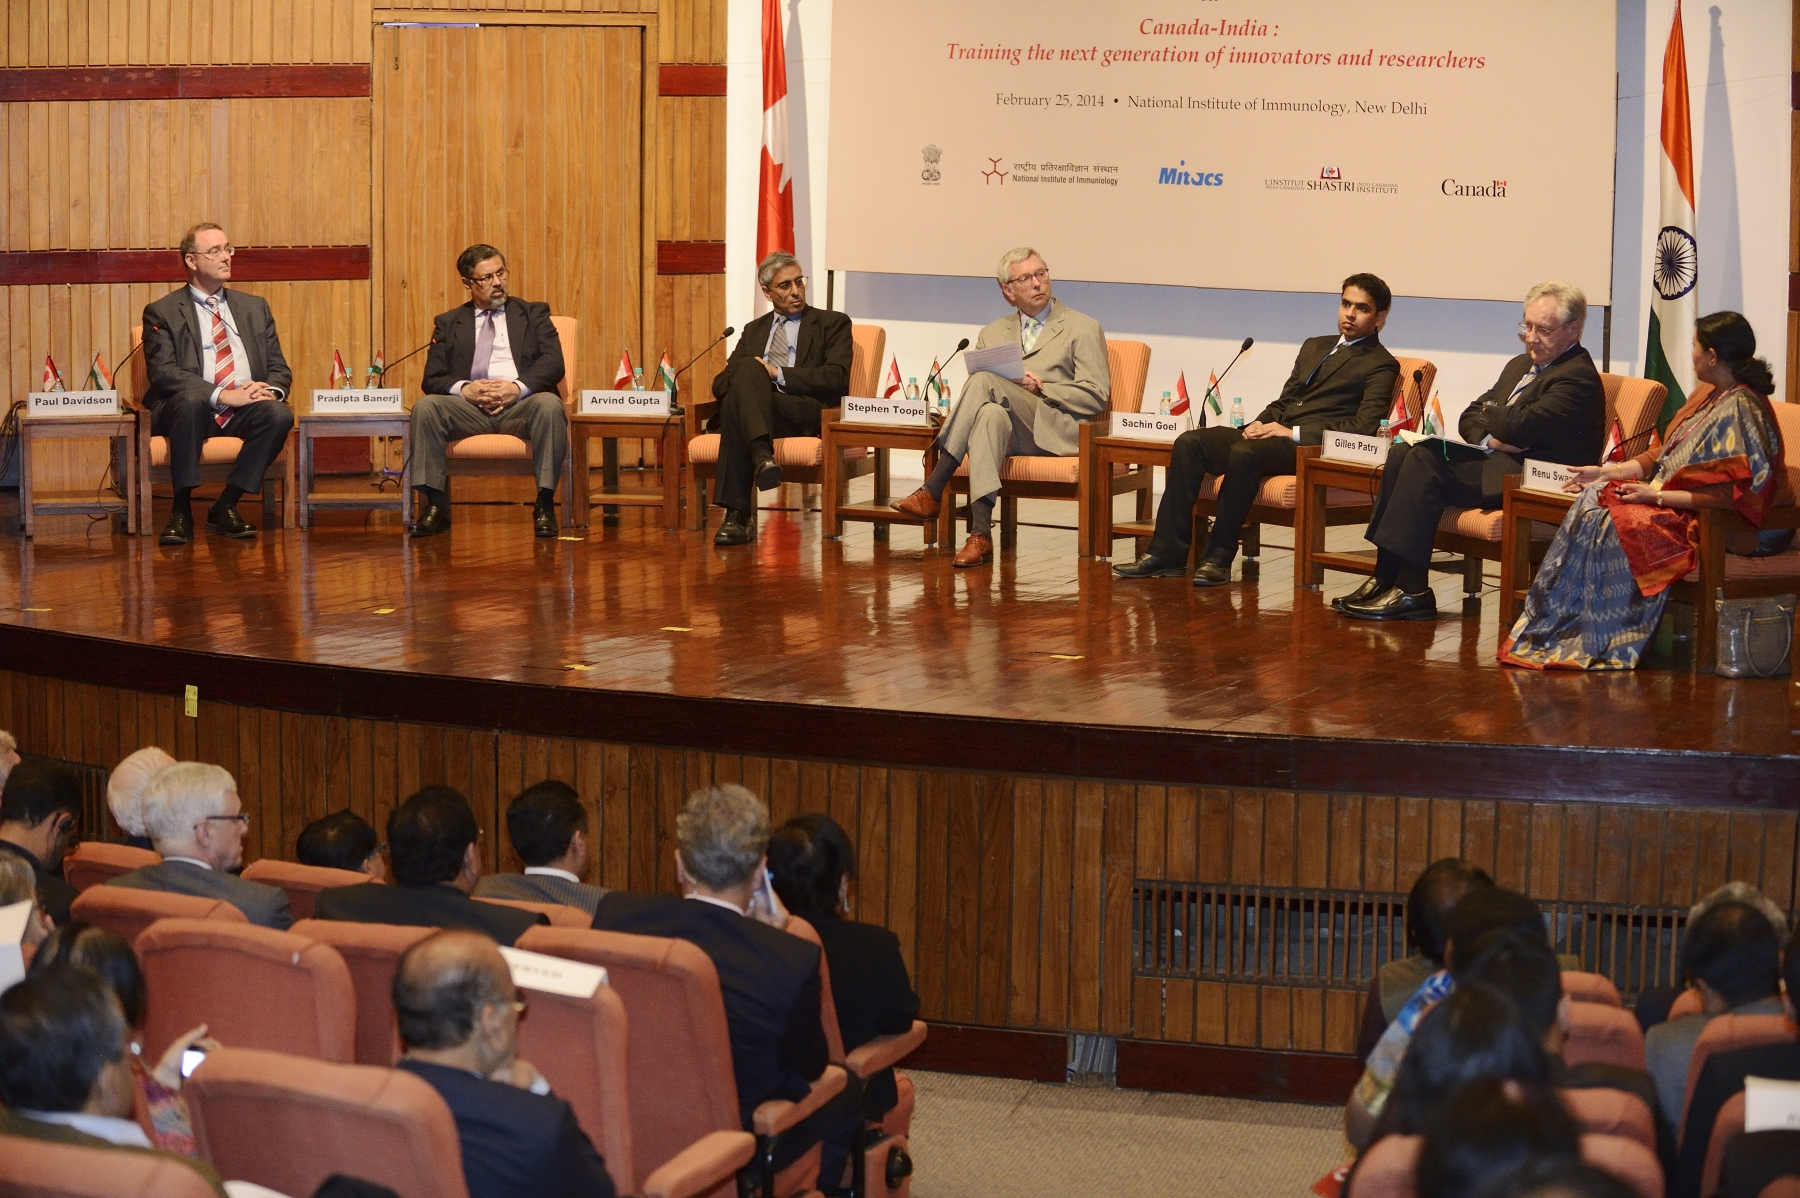 A panel discussion and question period with Canadian and Indian experts followed. Both focused on the important next steps needed to train new researchers and scholars, as well as education co-operation and mobility between Canada and India.